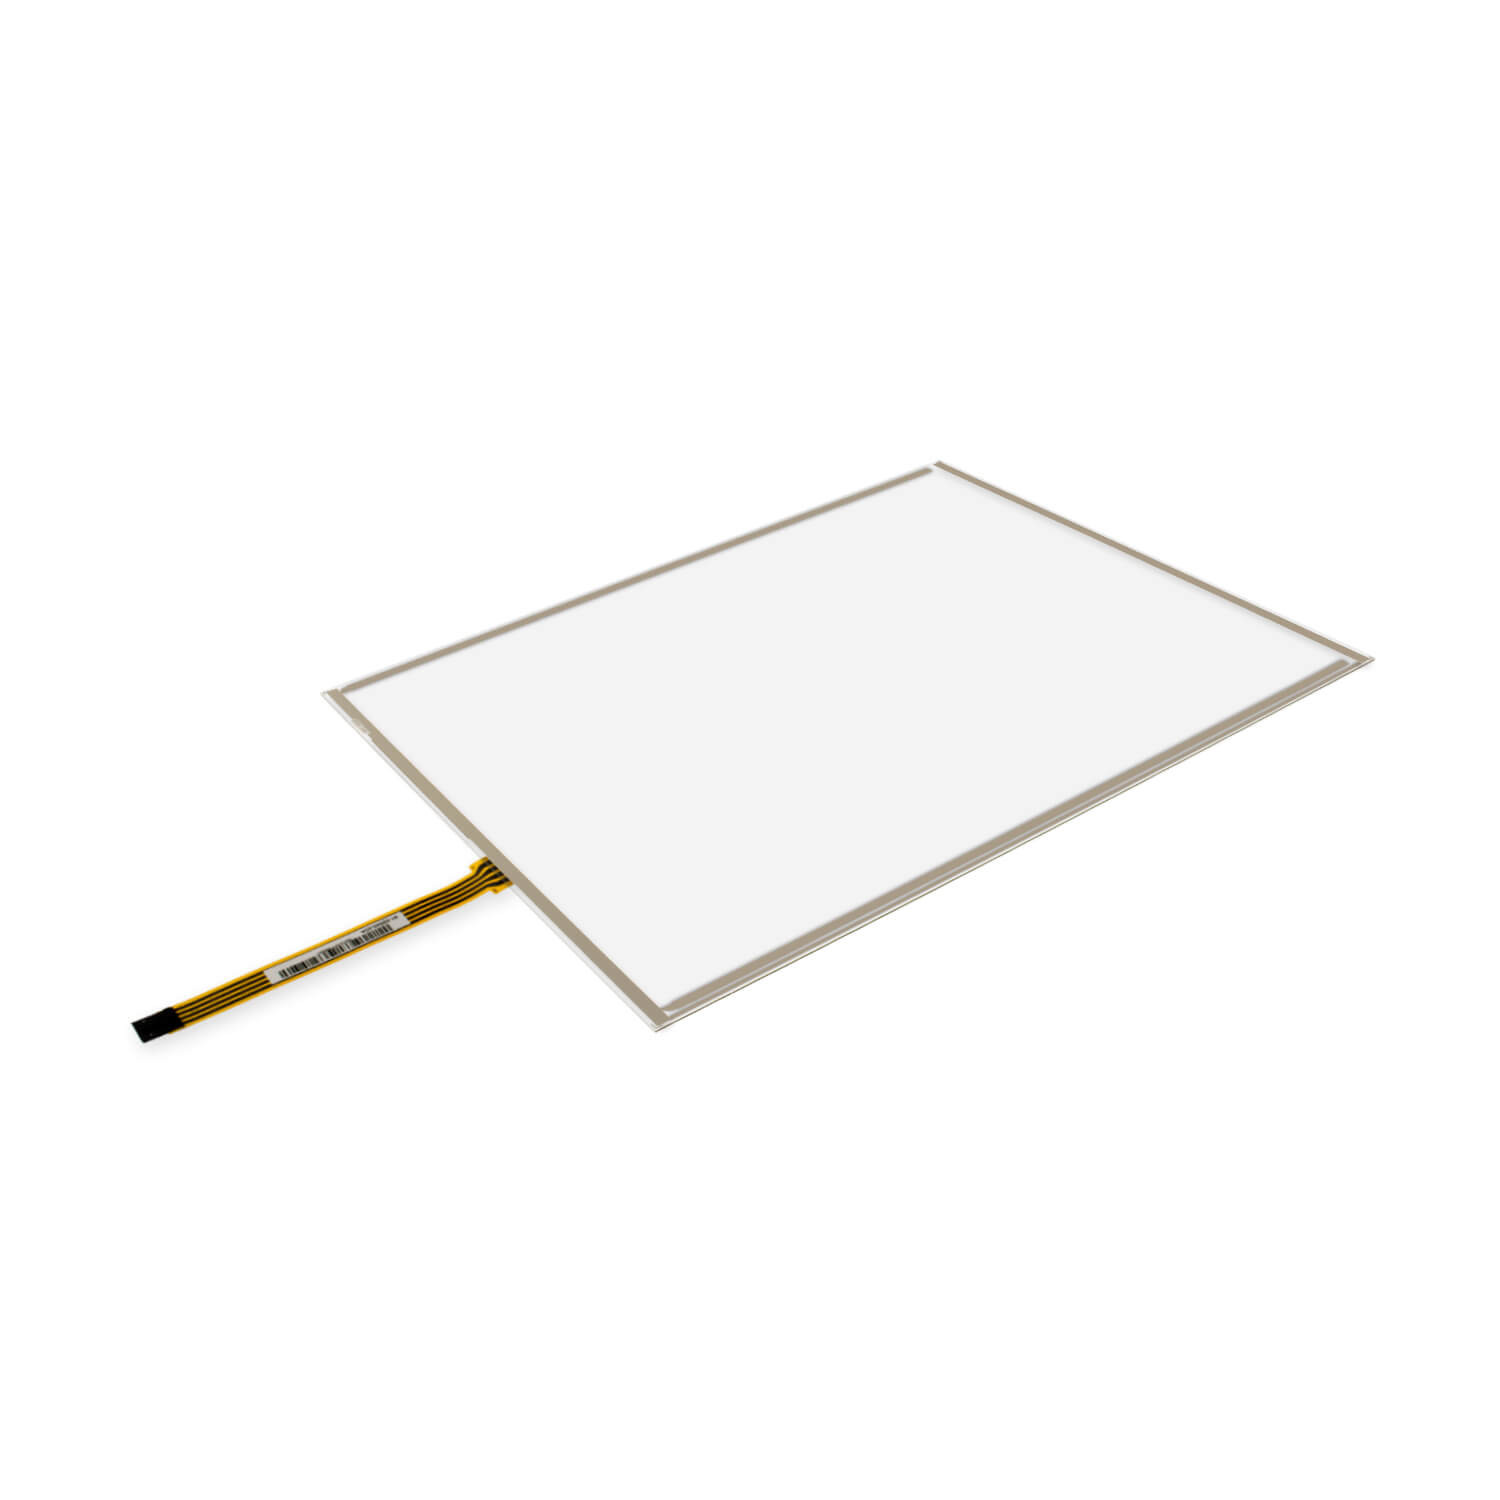 RTP15.0-4W-AMT-9543-00A - resistive touch screen (15.0-inch, 16:9 aspect ratio, 1.8 mm glass)